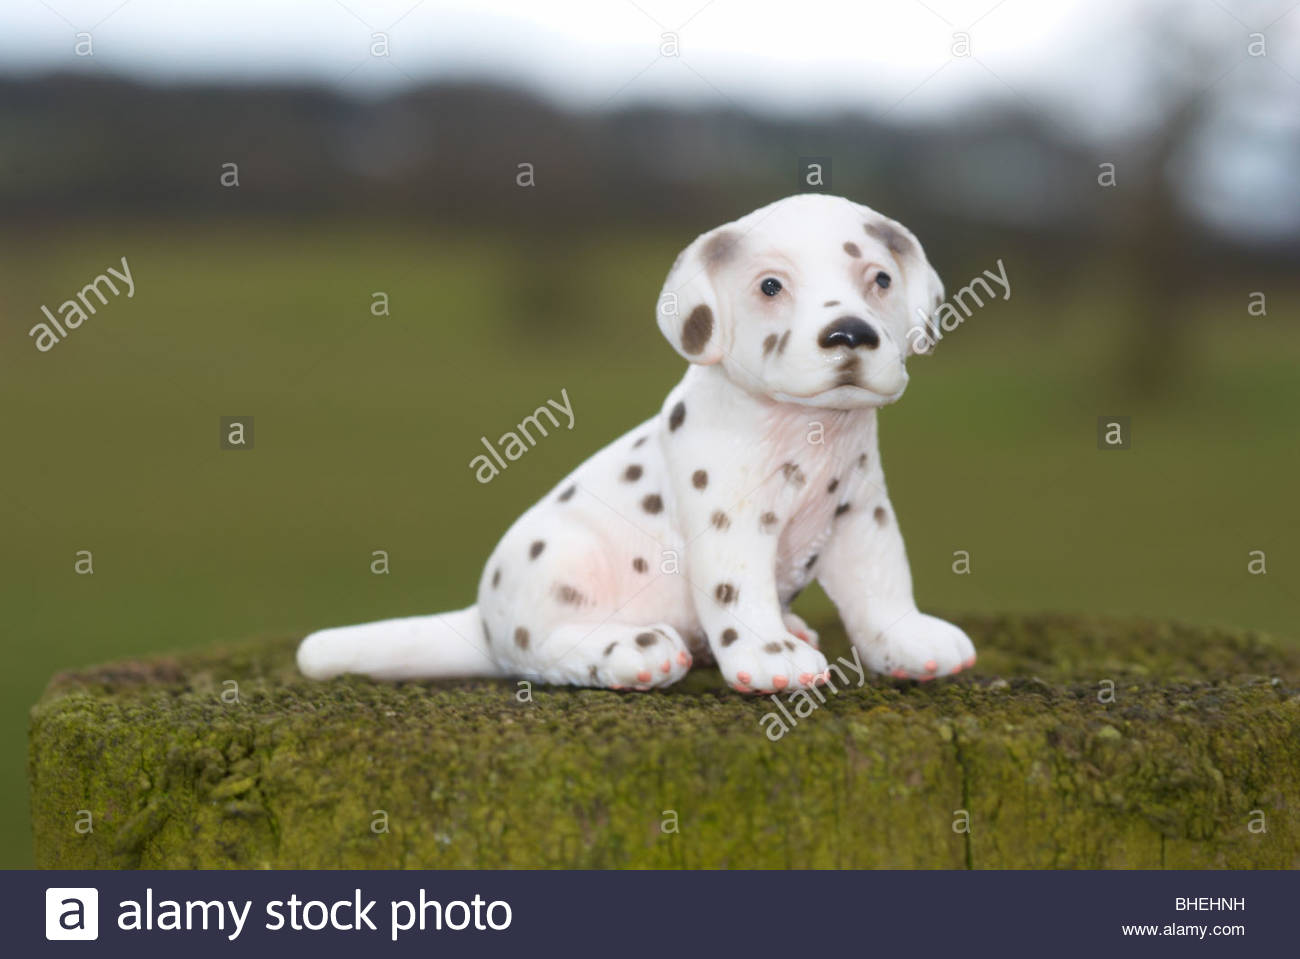 Plastic Dalmatian puppy photographed outdoors. - Stock Image